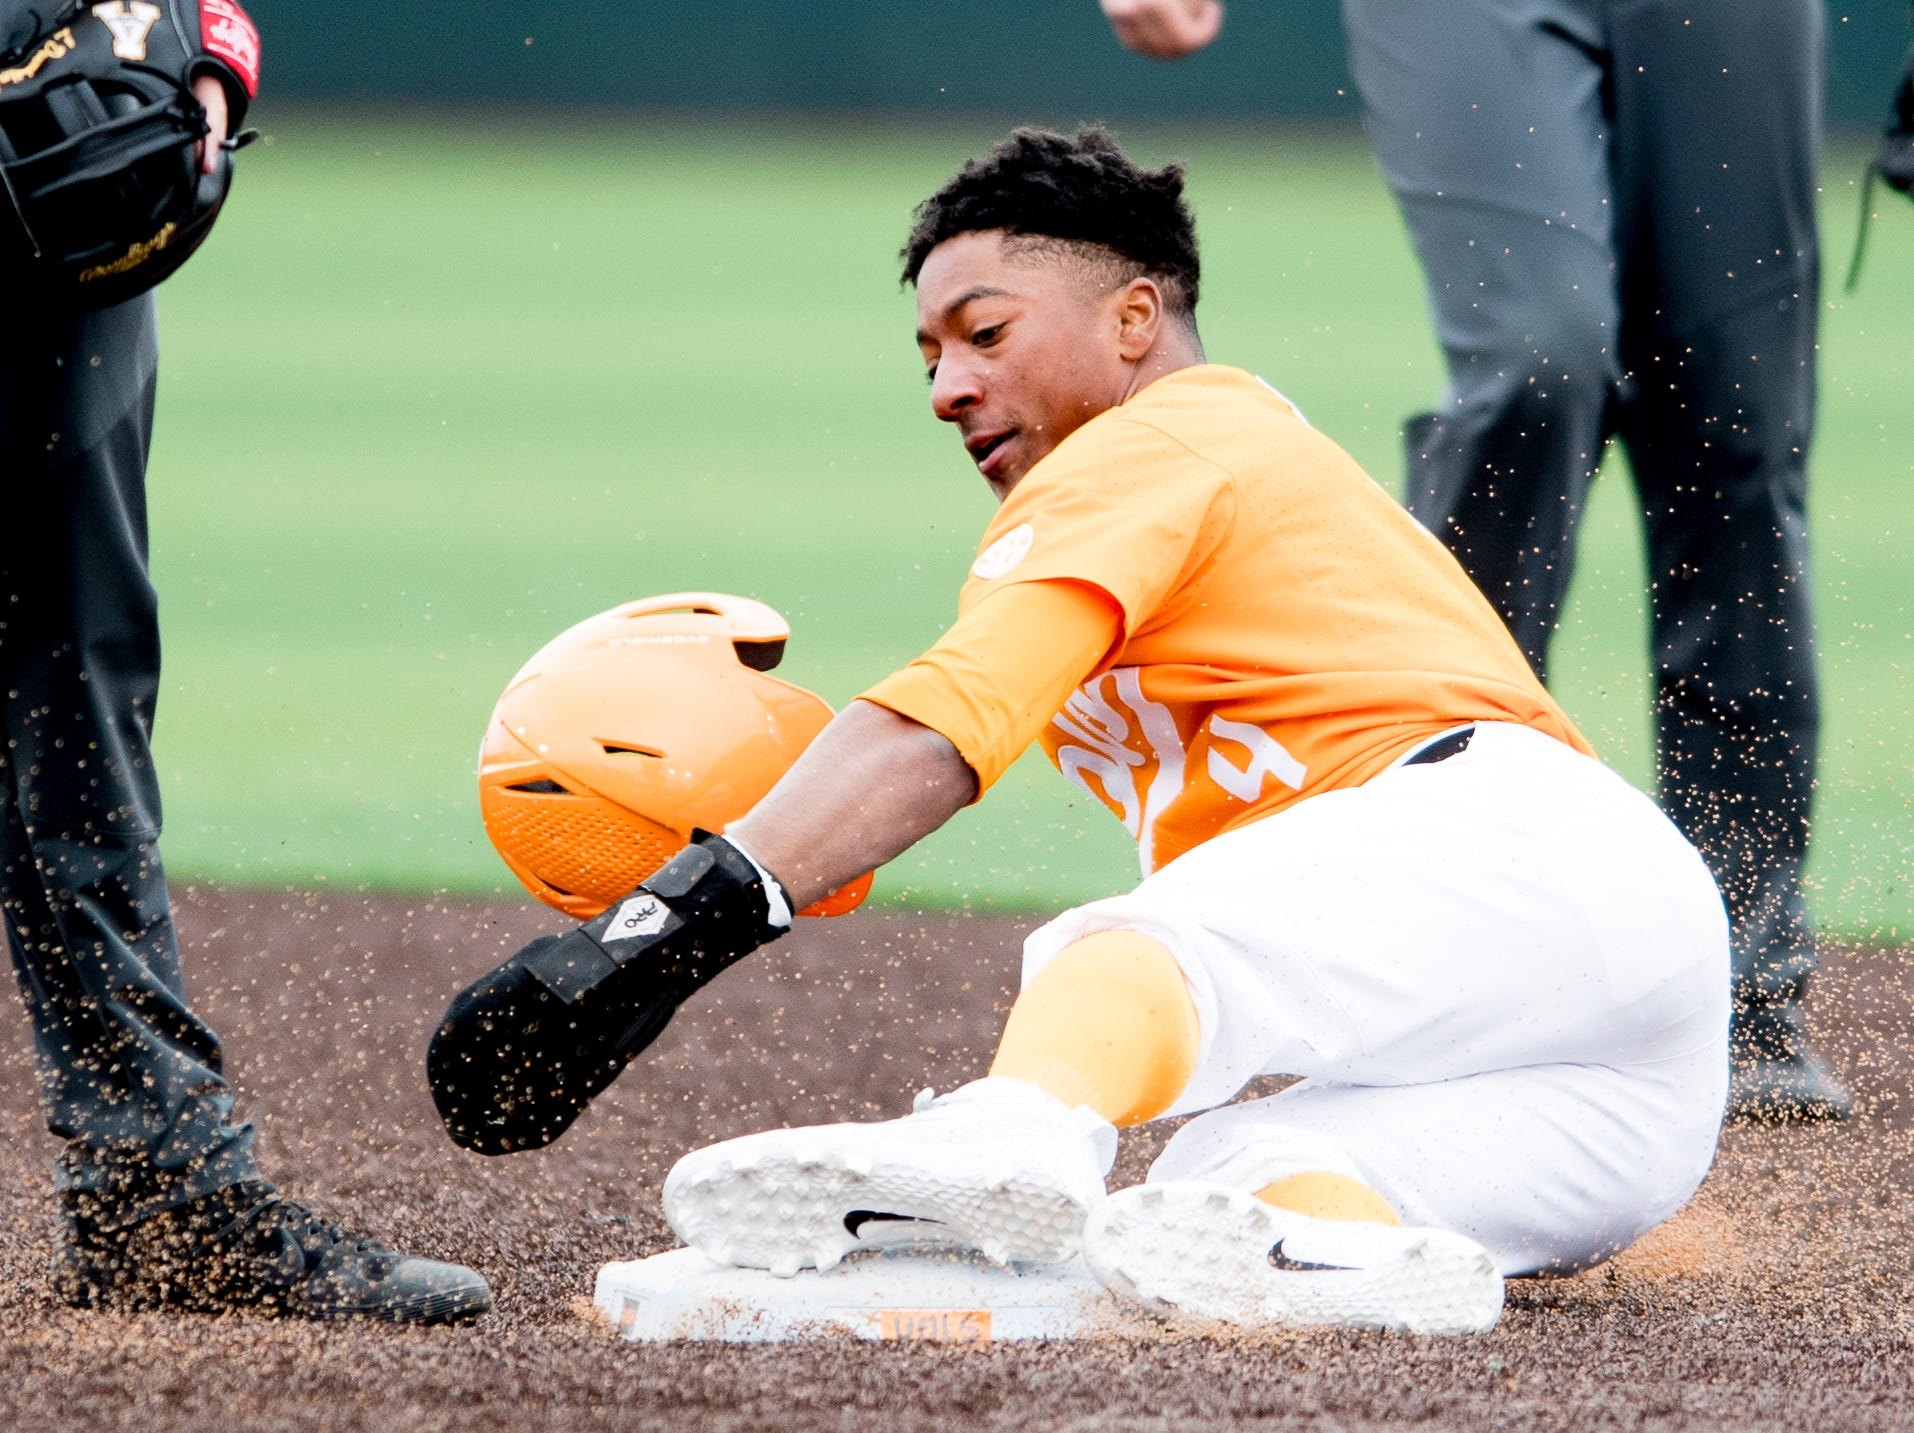 Tennessee outfielder/infielder Jay Charleston (4) loses his helmet while stealing second base during a Tennessee baseball home opener game against Appalachian State at Lindsey Nelson Stadium in Knoxville, Tennessee on Saturday, February 16, 2019.